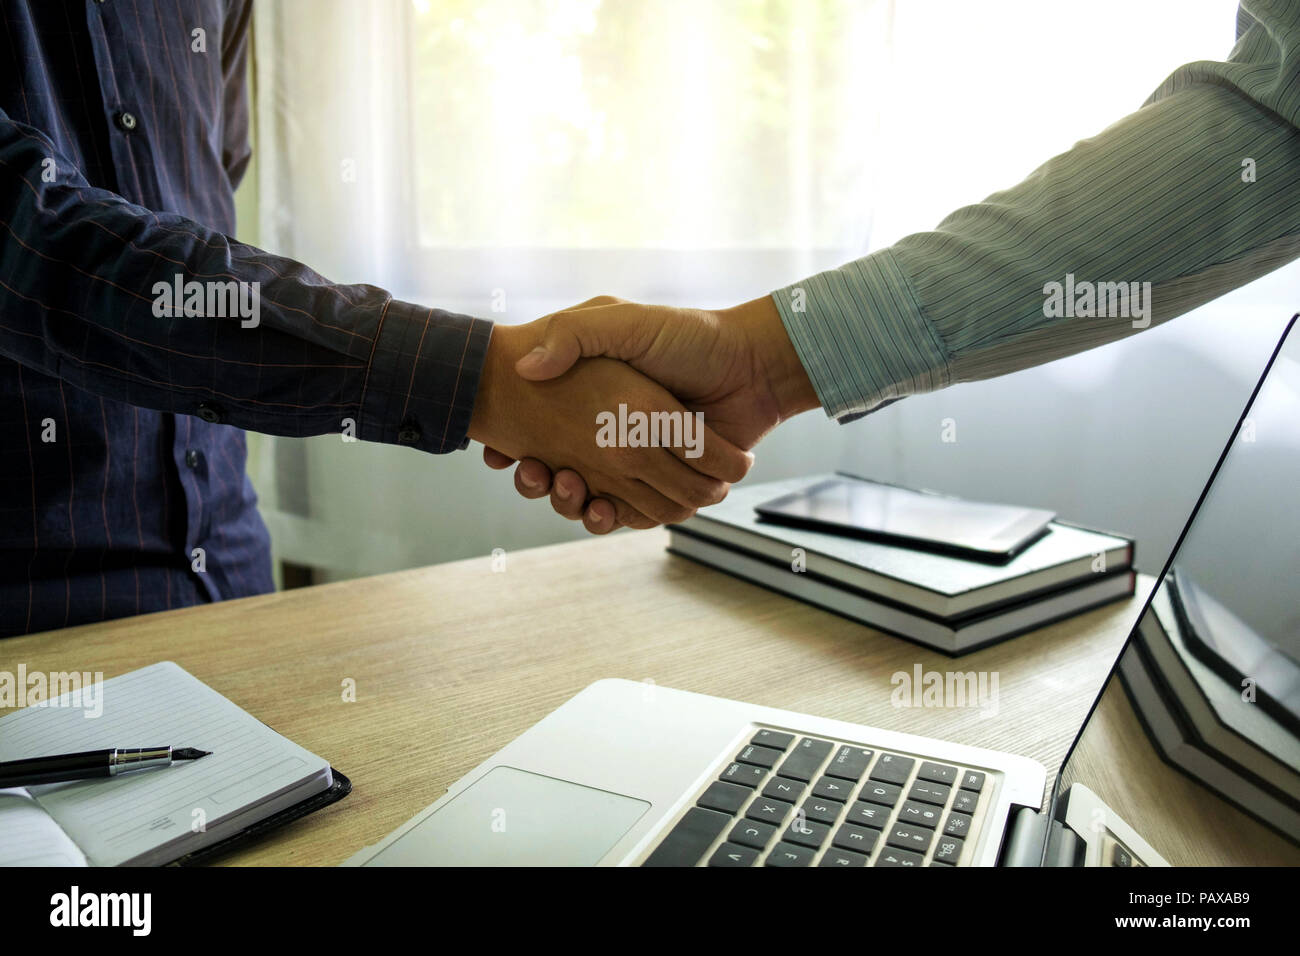 Business handshake. Business people shaking hands, finishing up a meeting,Success agreement negotiation. - Stock Image